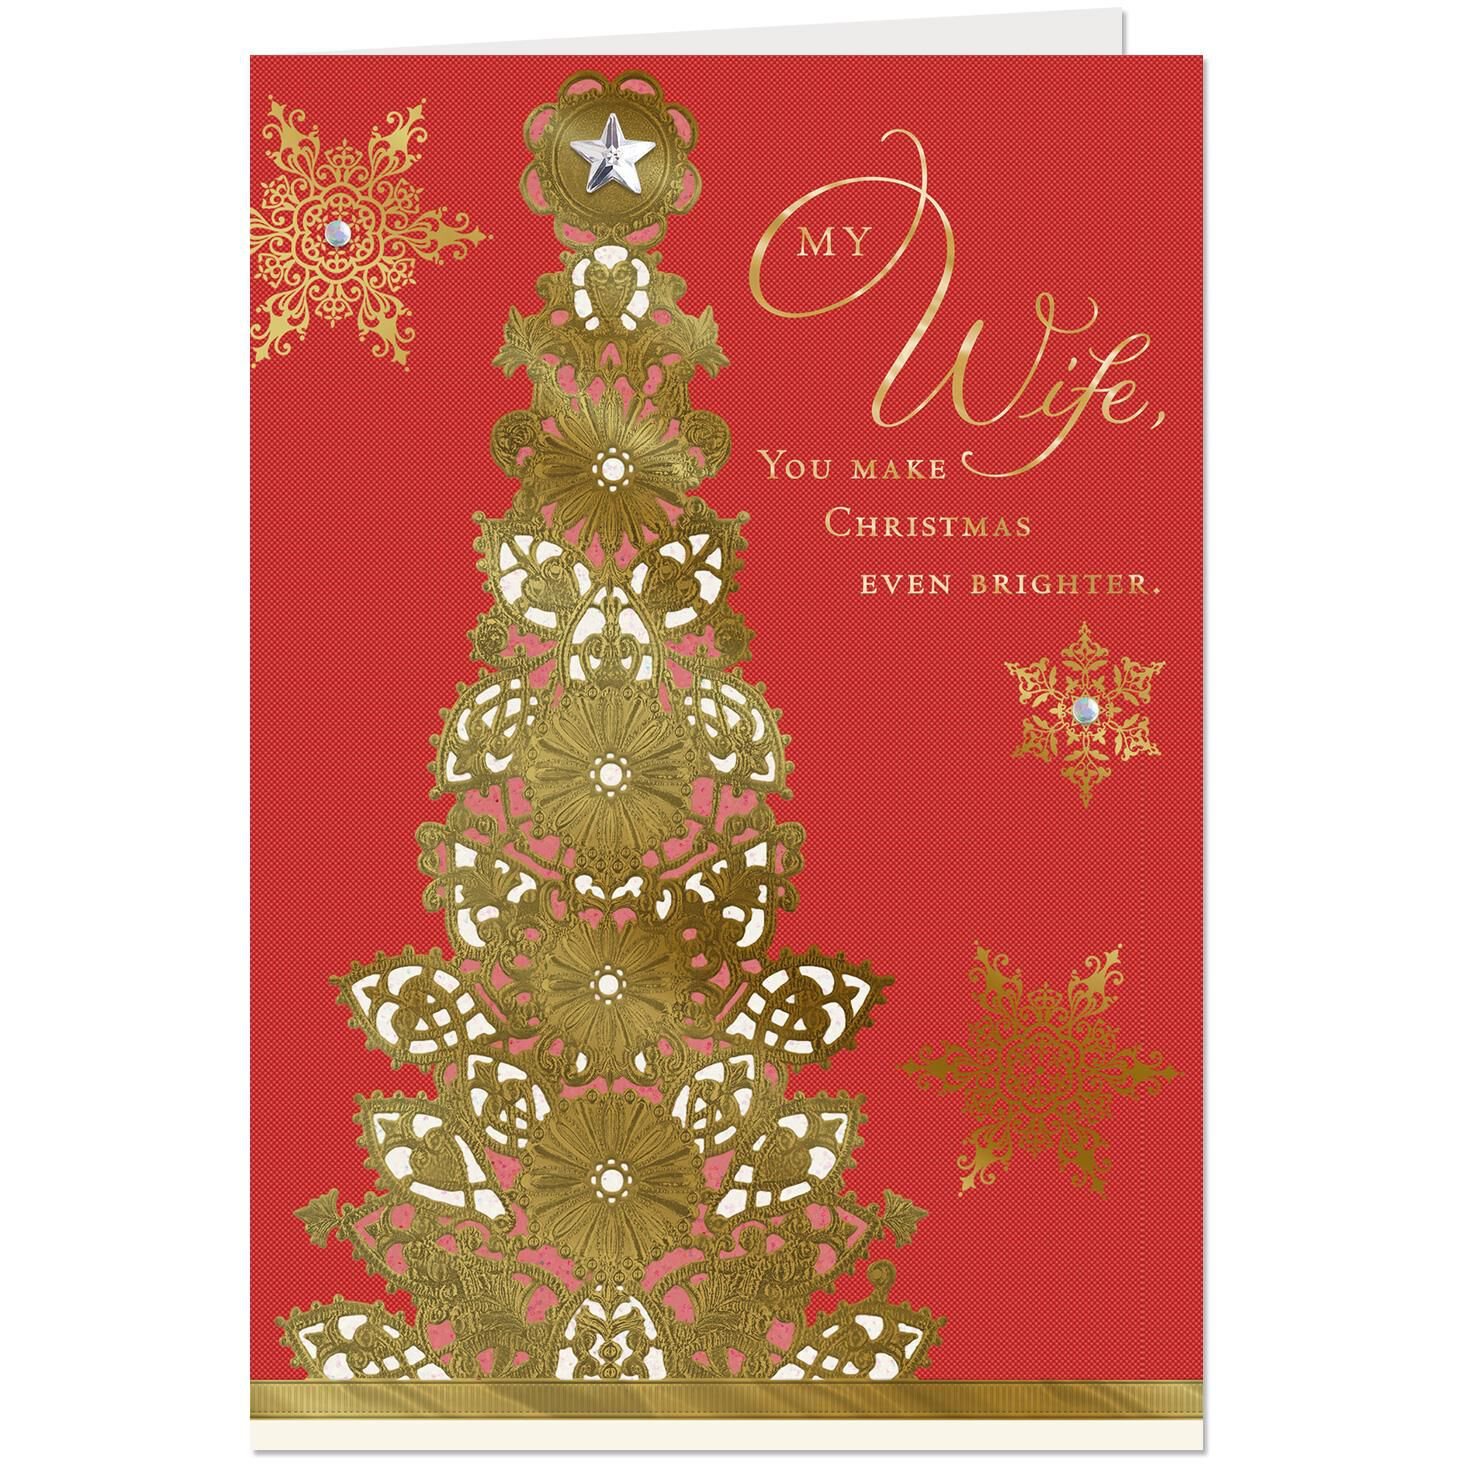 The blessings you bring to my life christmas card for wife the blessings you bring to my life christmas card for wife greeting cards hallmark m4hsunfo